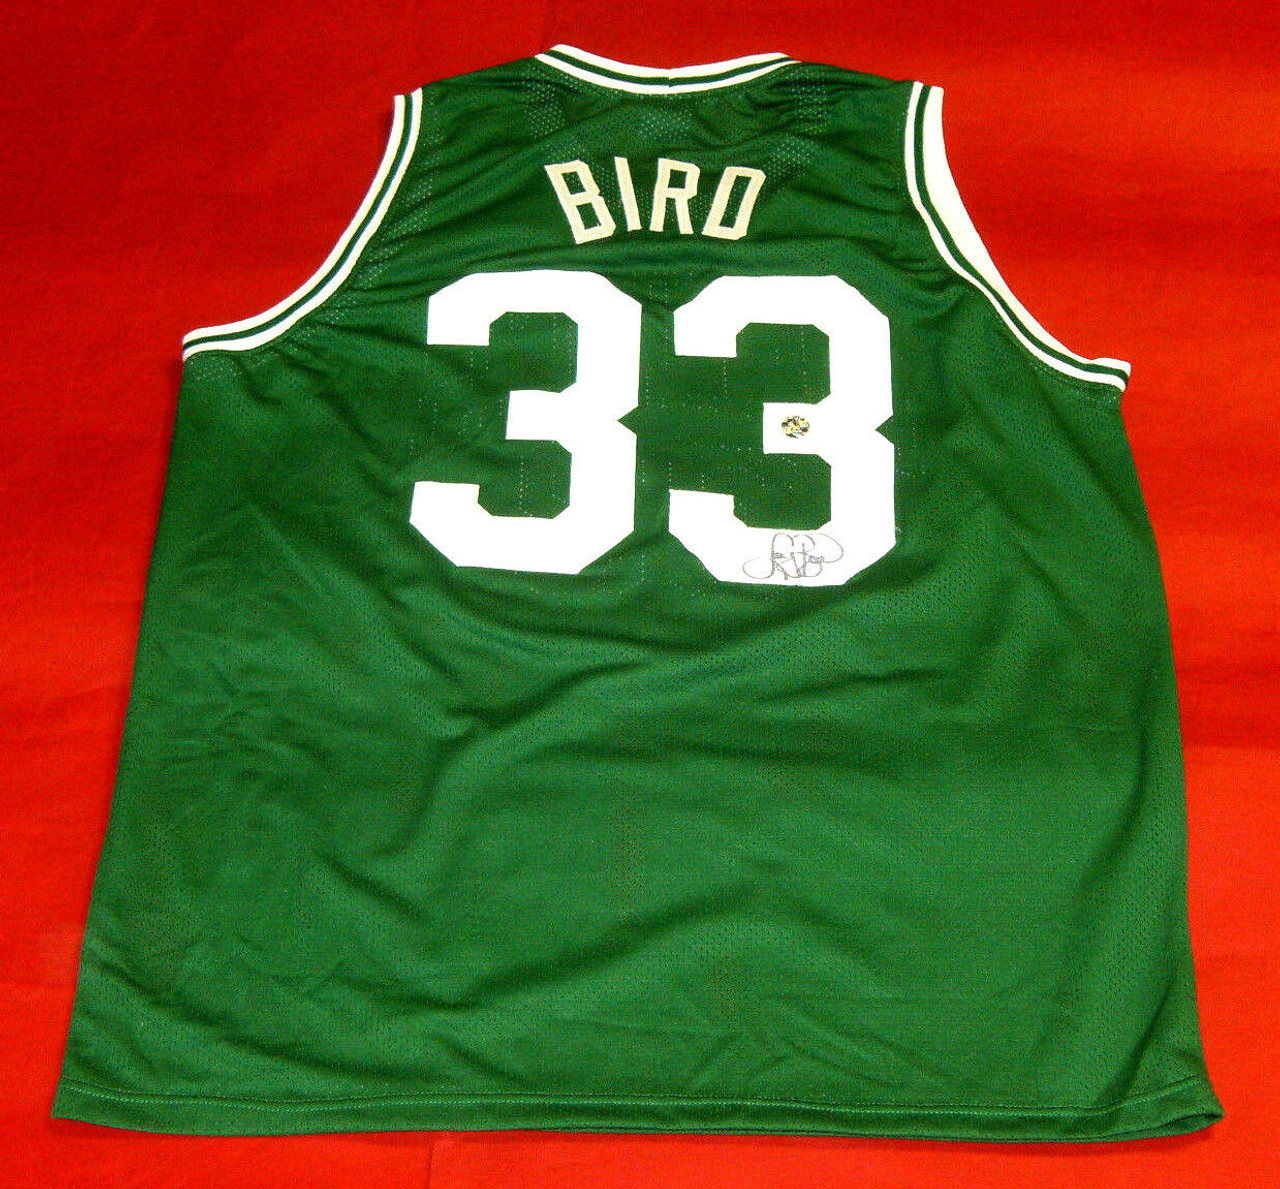 brand new 77f2e 5d4d0 LARRY BIRD AUTOGRAPHED BOSTON CELTICS JERSEY BIRD AUTHENTICATED HOLOGRAM